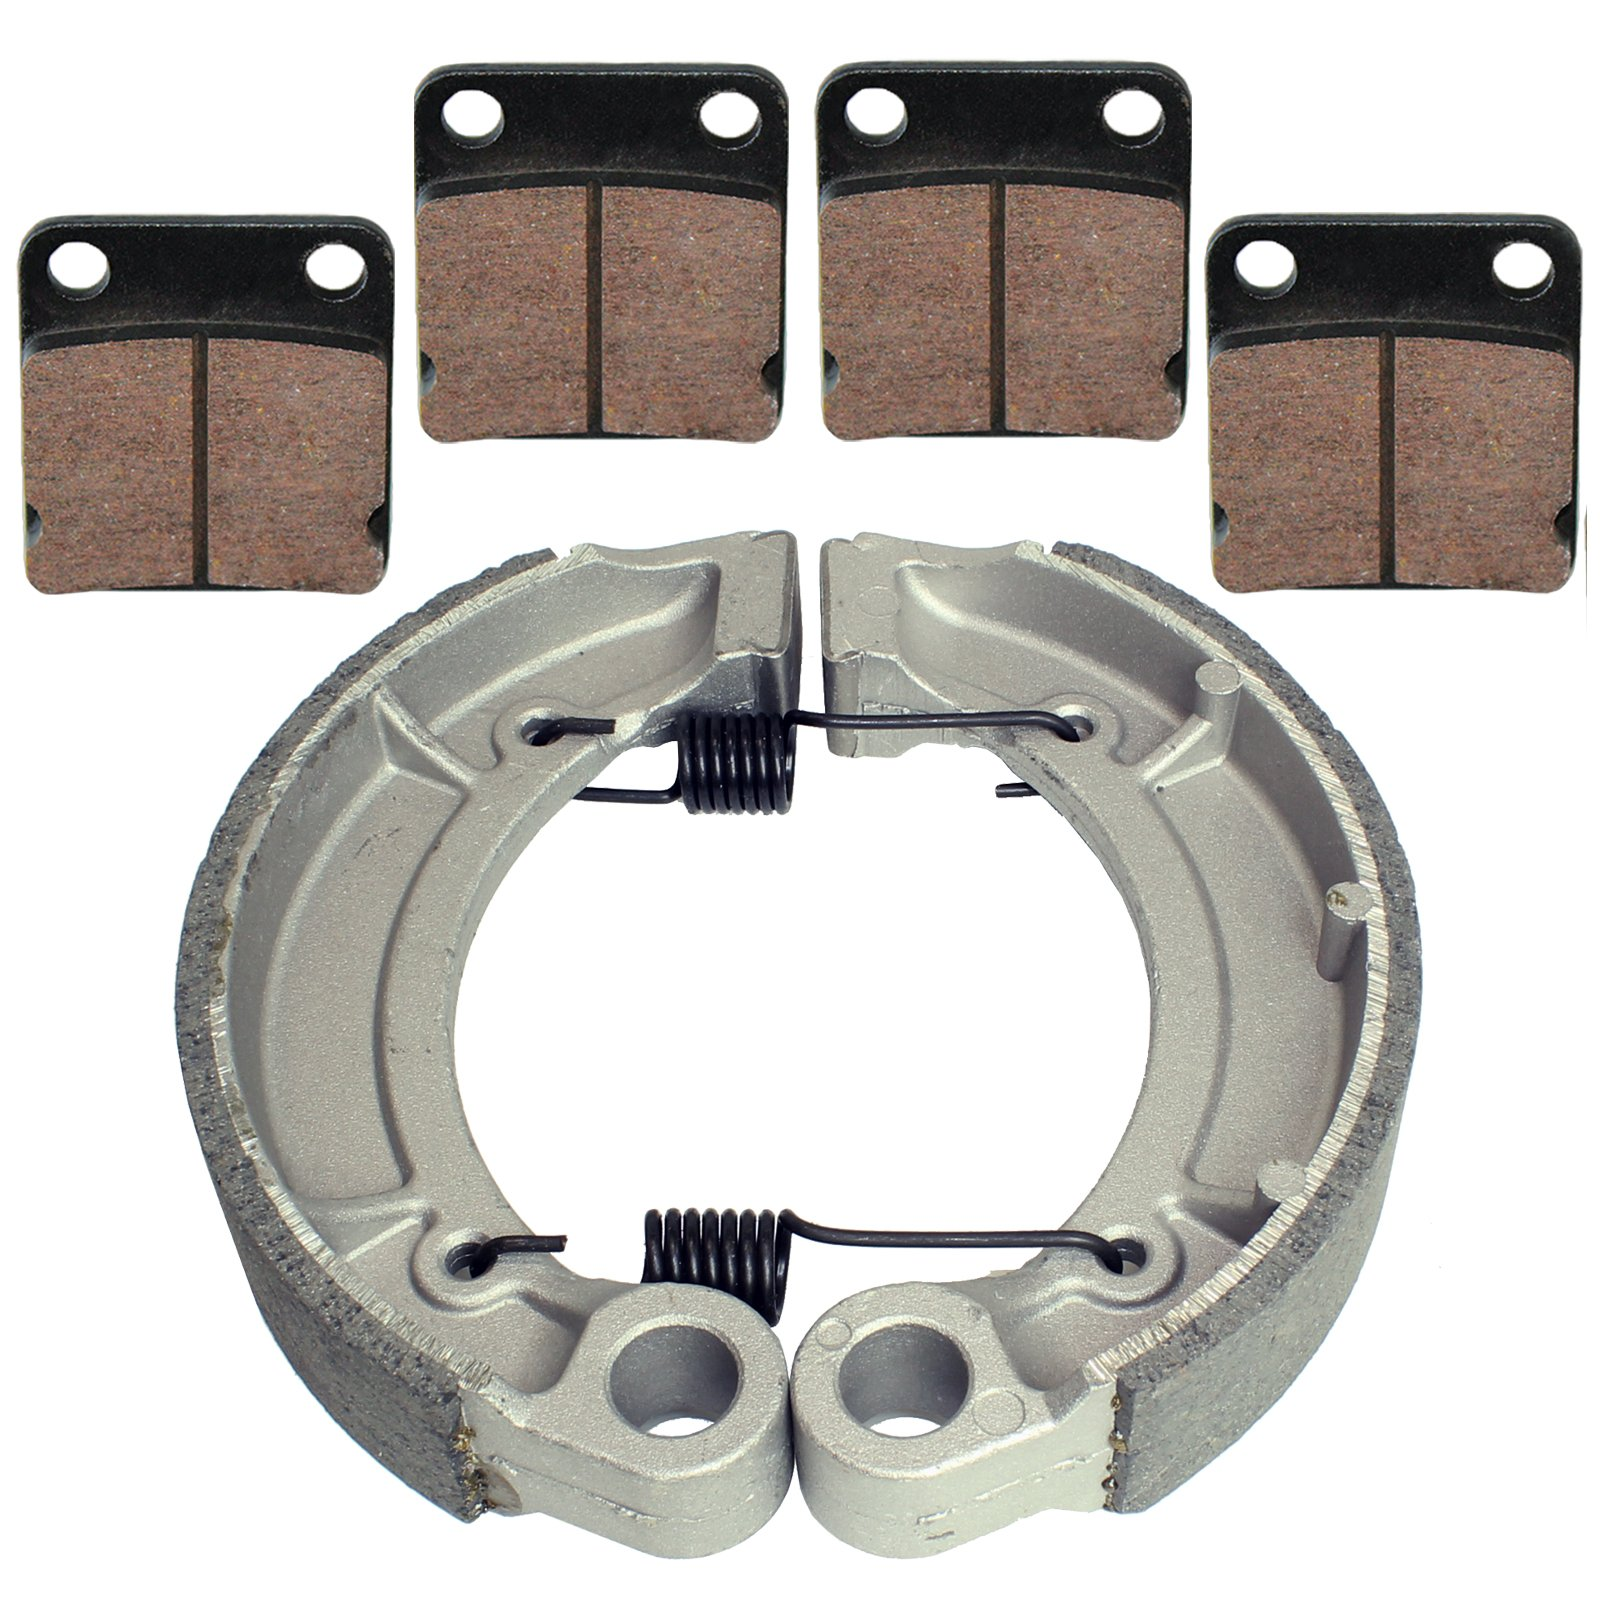 Caltric FRONT BRAKE PADS & REAR BRAKE SHOES Fits YAMAHA GRIZZLY 350 YFM350 4WD IRS HUNTER 2007-2012 NEW